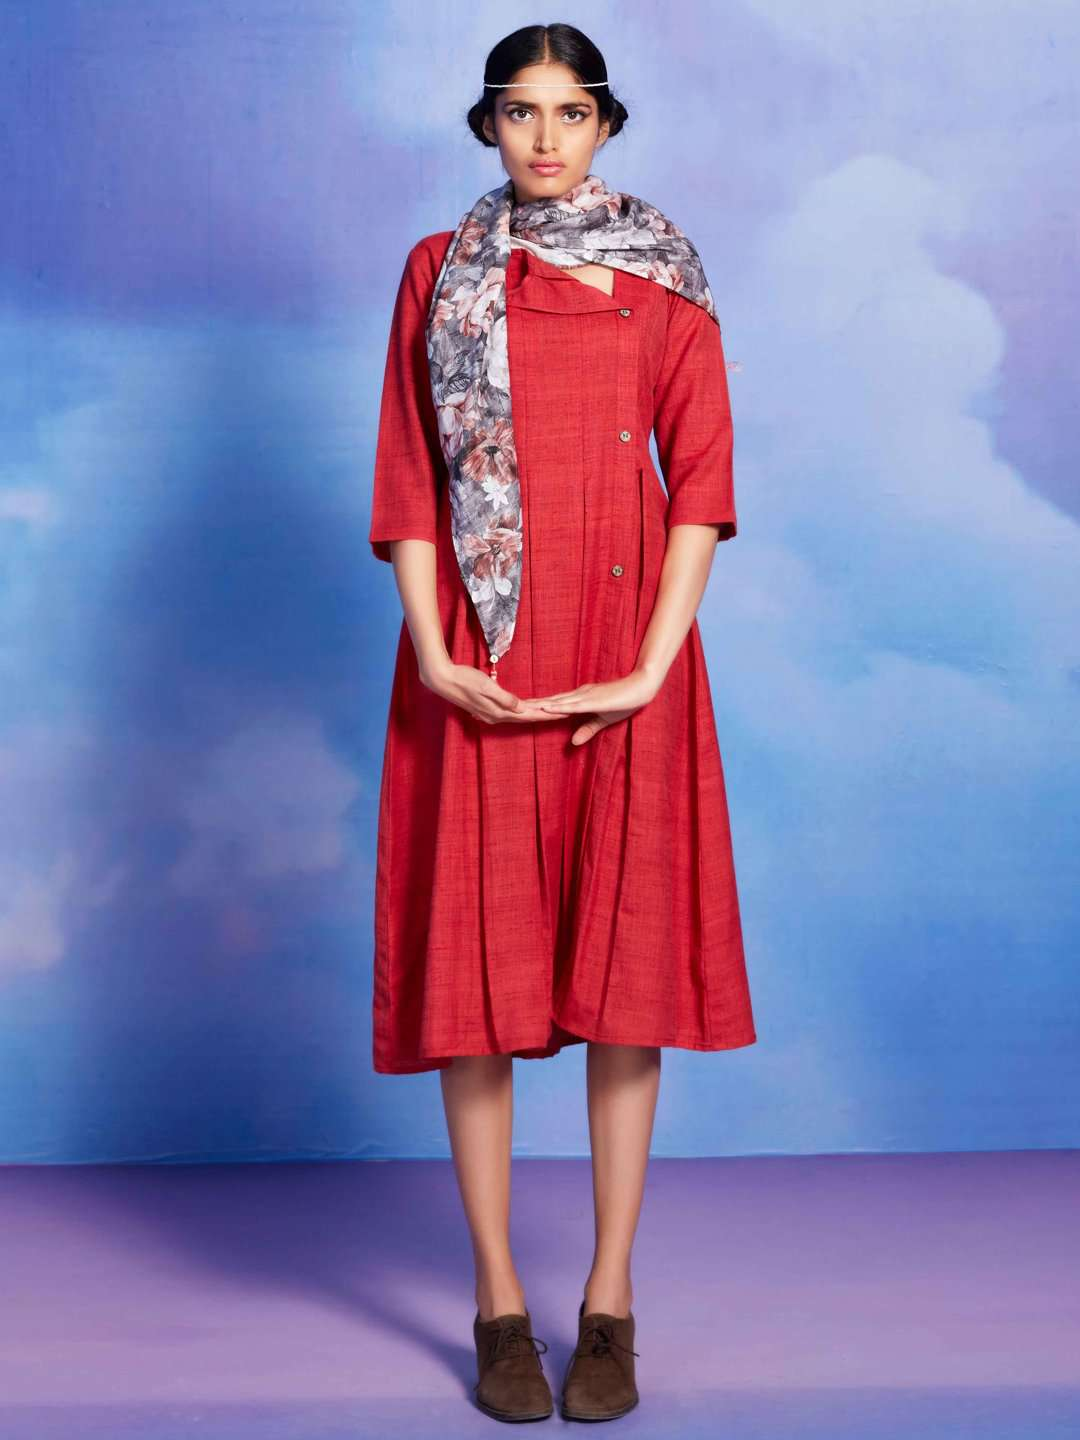 Fashionista Red Plain Cotton A-Line Dress